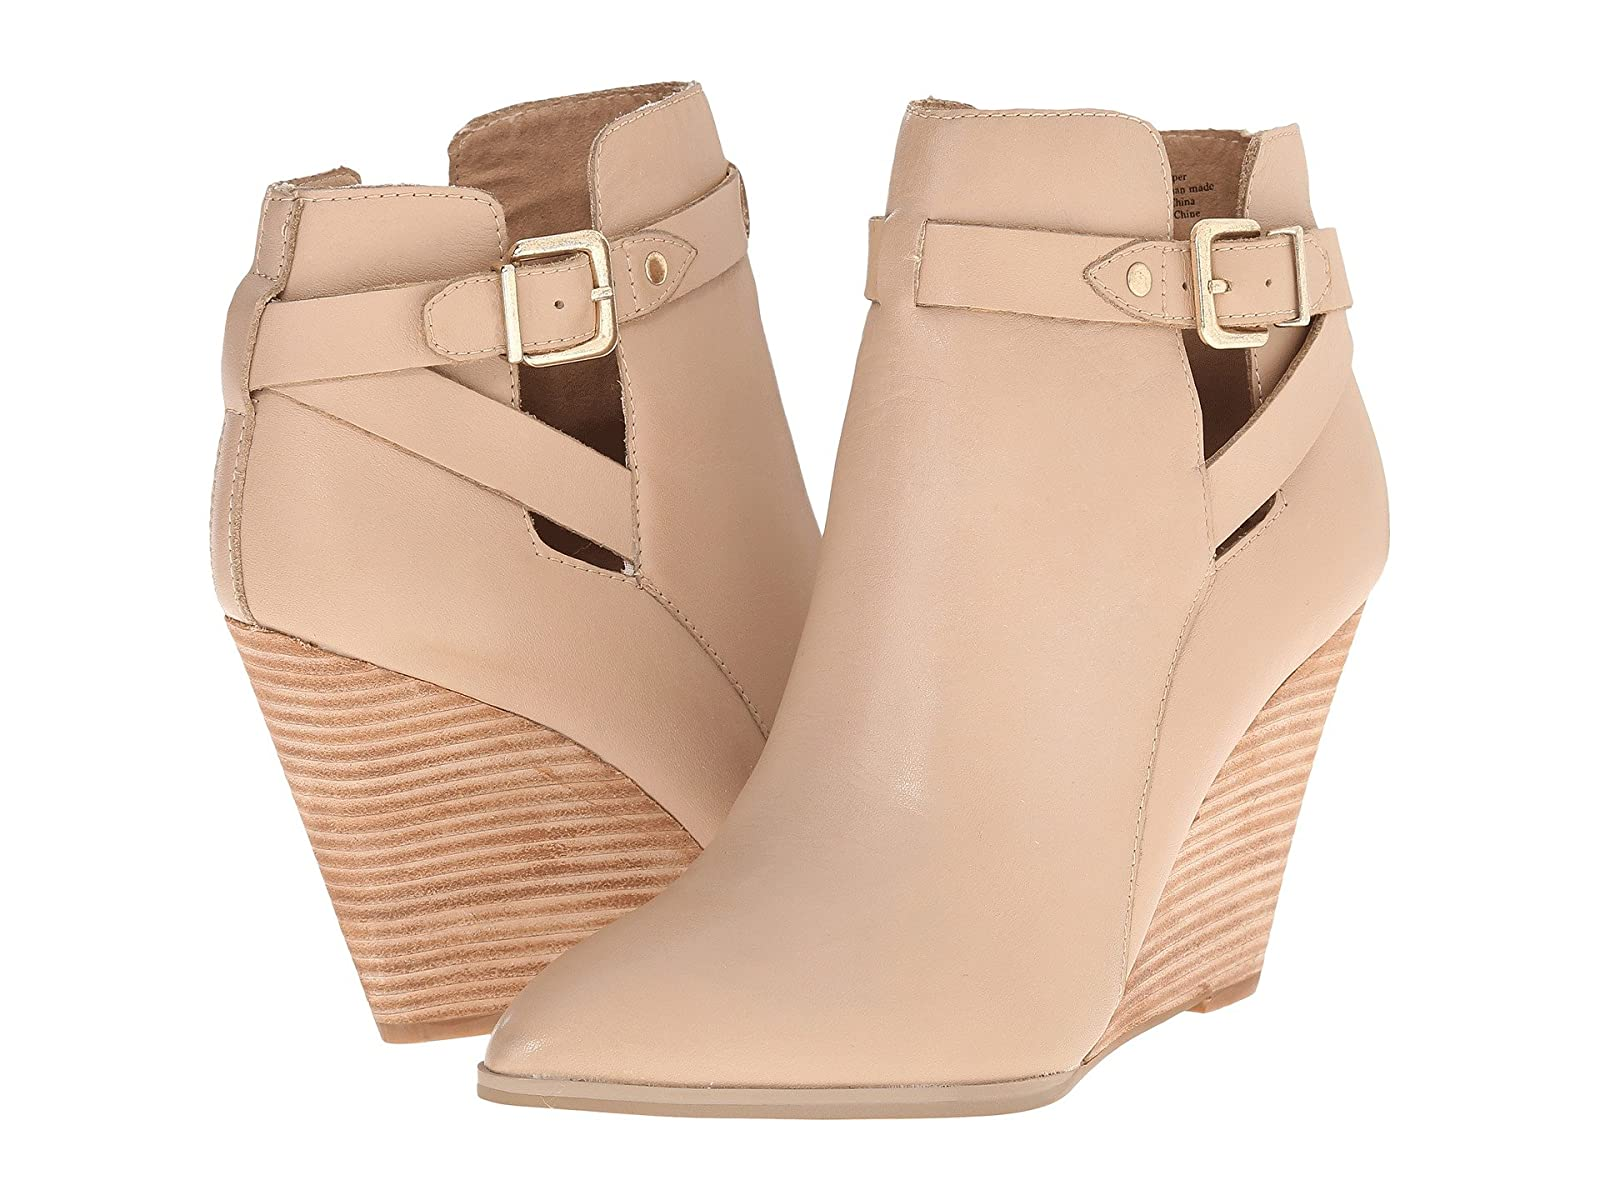 Seychelles ViolinCheap and distinctive eye-catching shoes